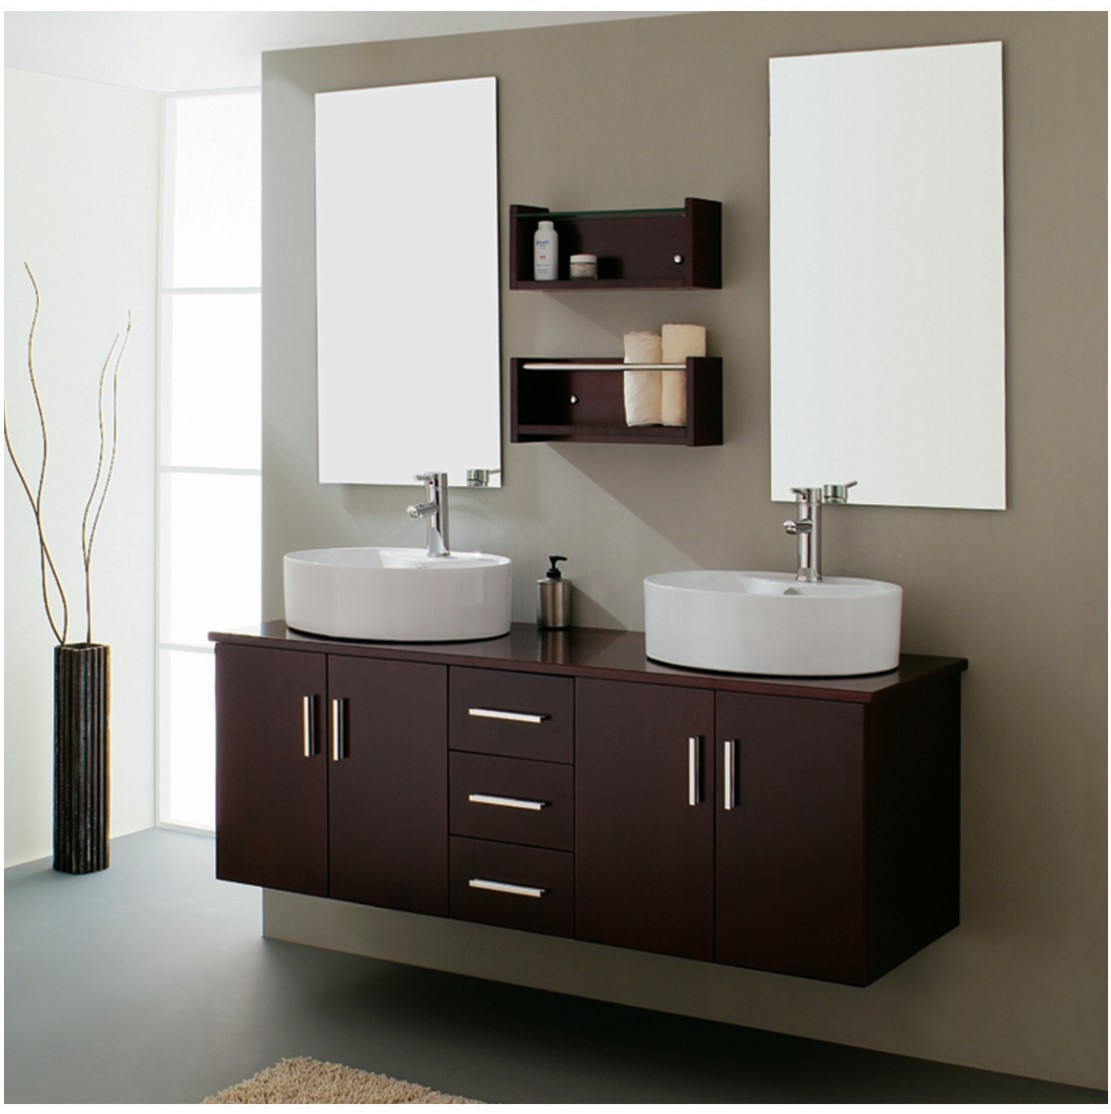 Beautiful bathroom vanities Photo - 1